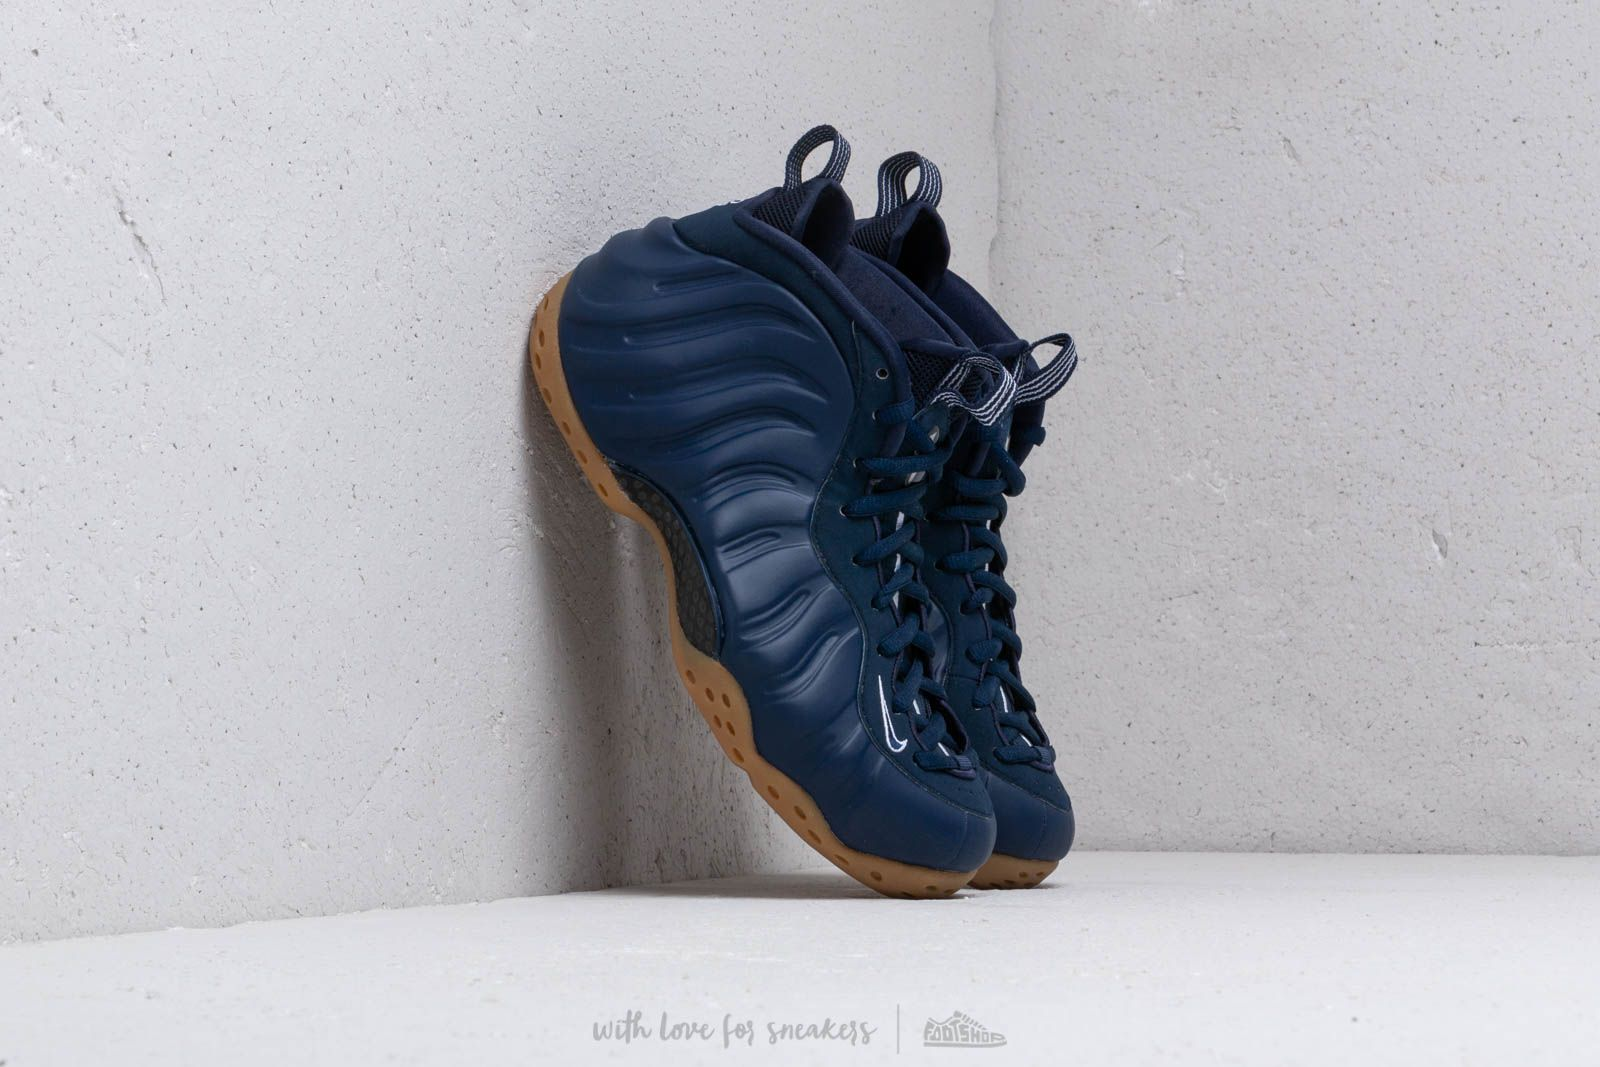 reputable site d22d5 f86b8 Nike Air Foamposite One Midnight Navy  Midnight Navy at a great price 205 €  buy